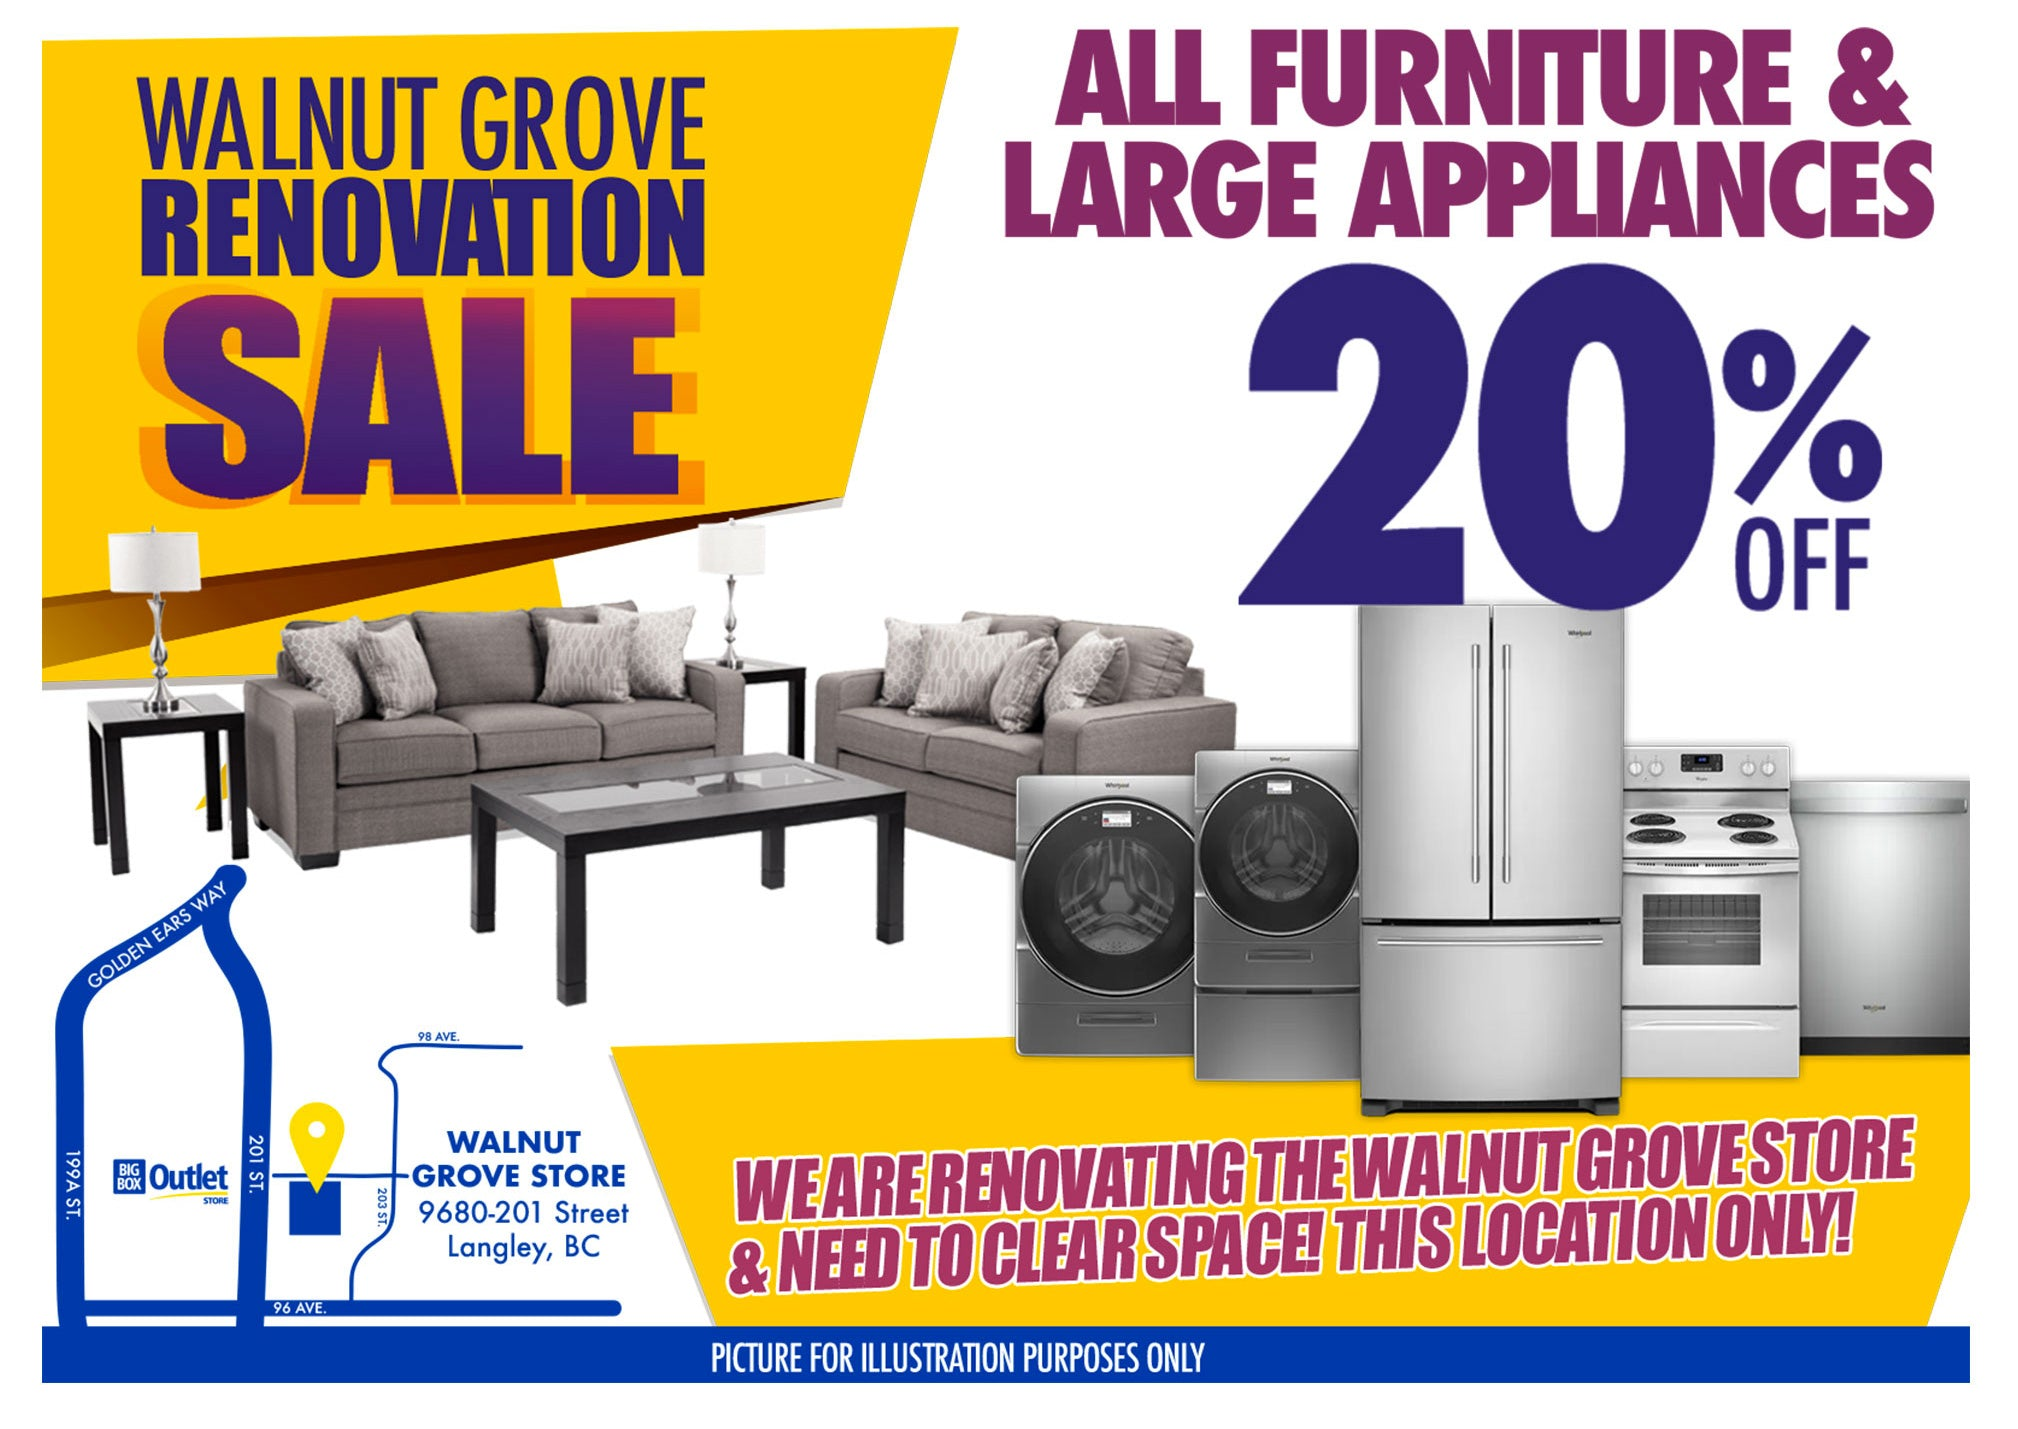 WALNUT GROVE RENOVATION SALE  ALL FURNITURE & LARGE APPLIANCES 20%OFF